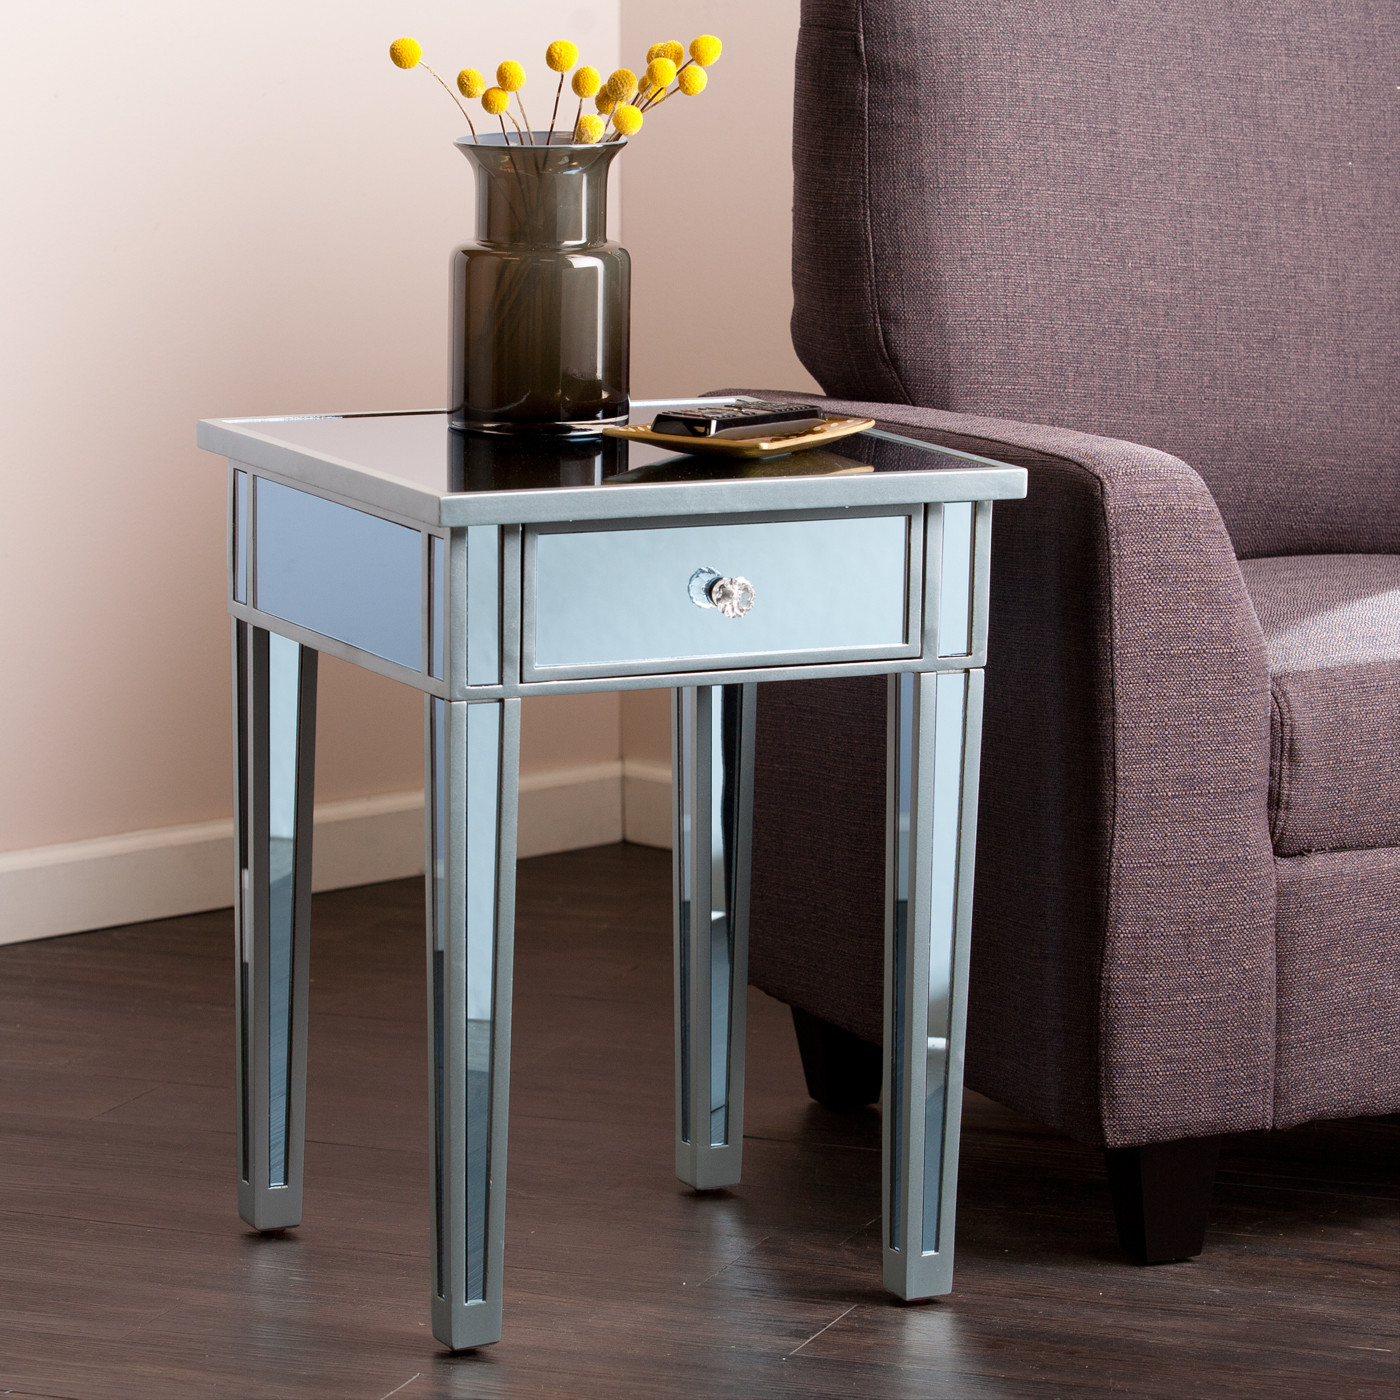 mirrored accent table hotel odaurze designs glass with drawer kitchen light shades linon galway white pier one furniture dining tables teak chairs narrow entryway home goods round